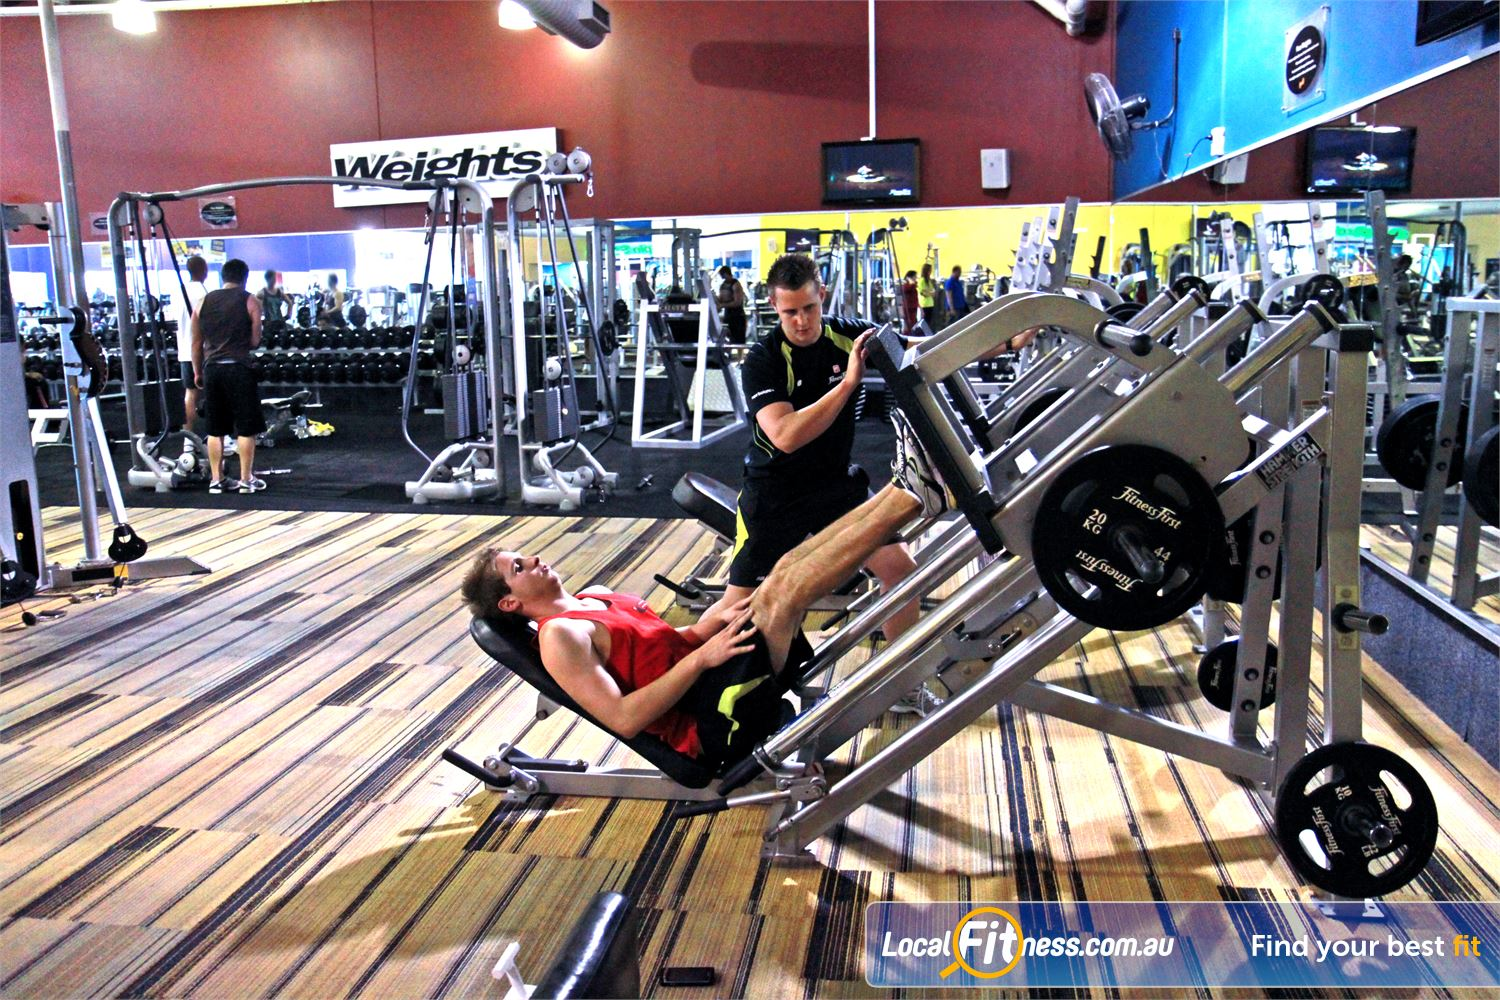 Goodlife Health Clubs Near Bentley Our Cannington gym offers many gym floor programs with qualified staff.